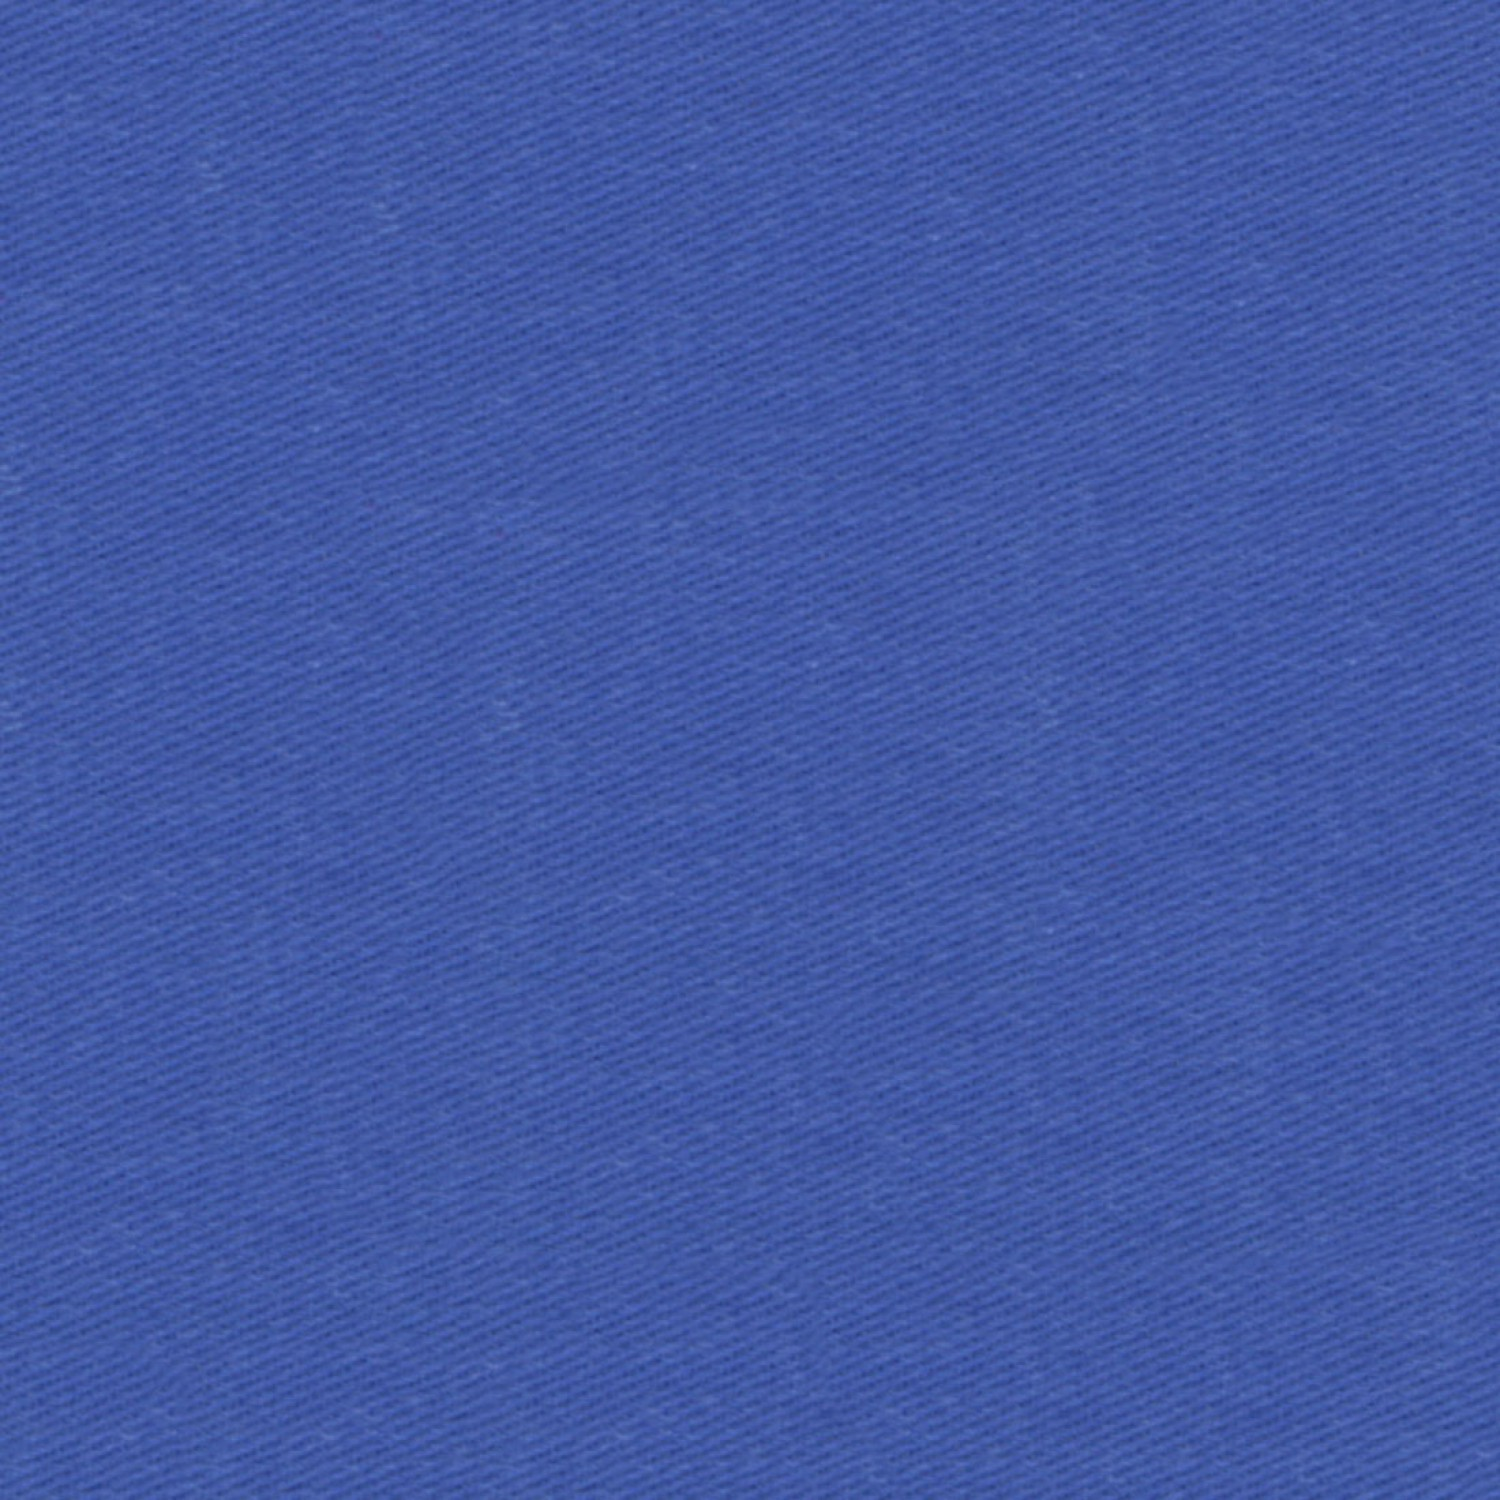 "Milestone Twill Imperial Royal Fabric 7oz - 60"" Wide x Per Yard"